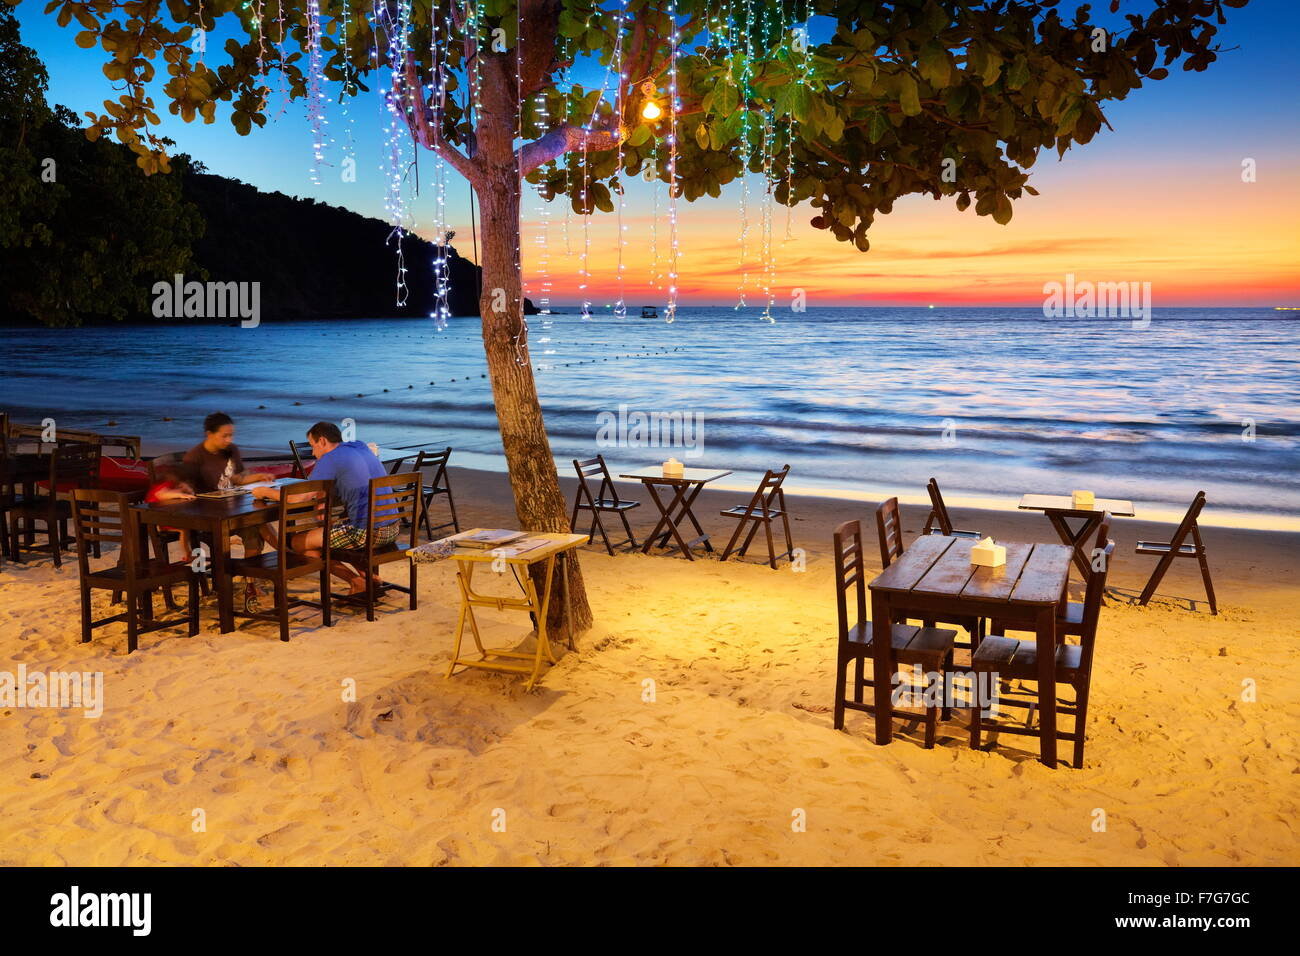 Beach Restaurant at the Lima Coco Resort, Koh Samet Island, Thailand - Stock Image